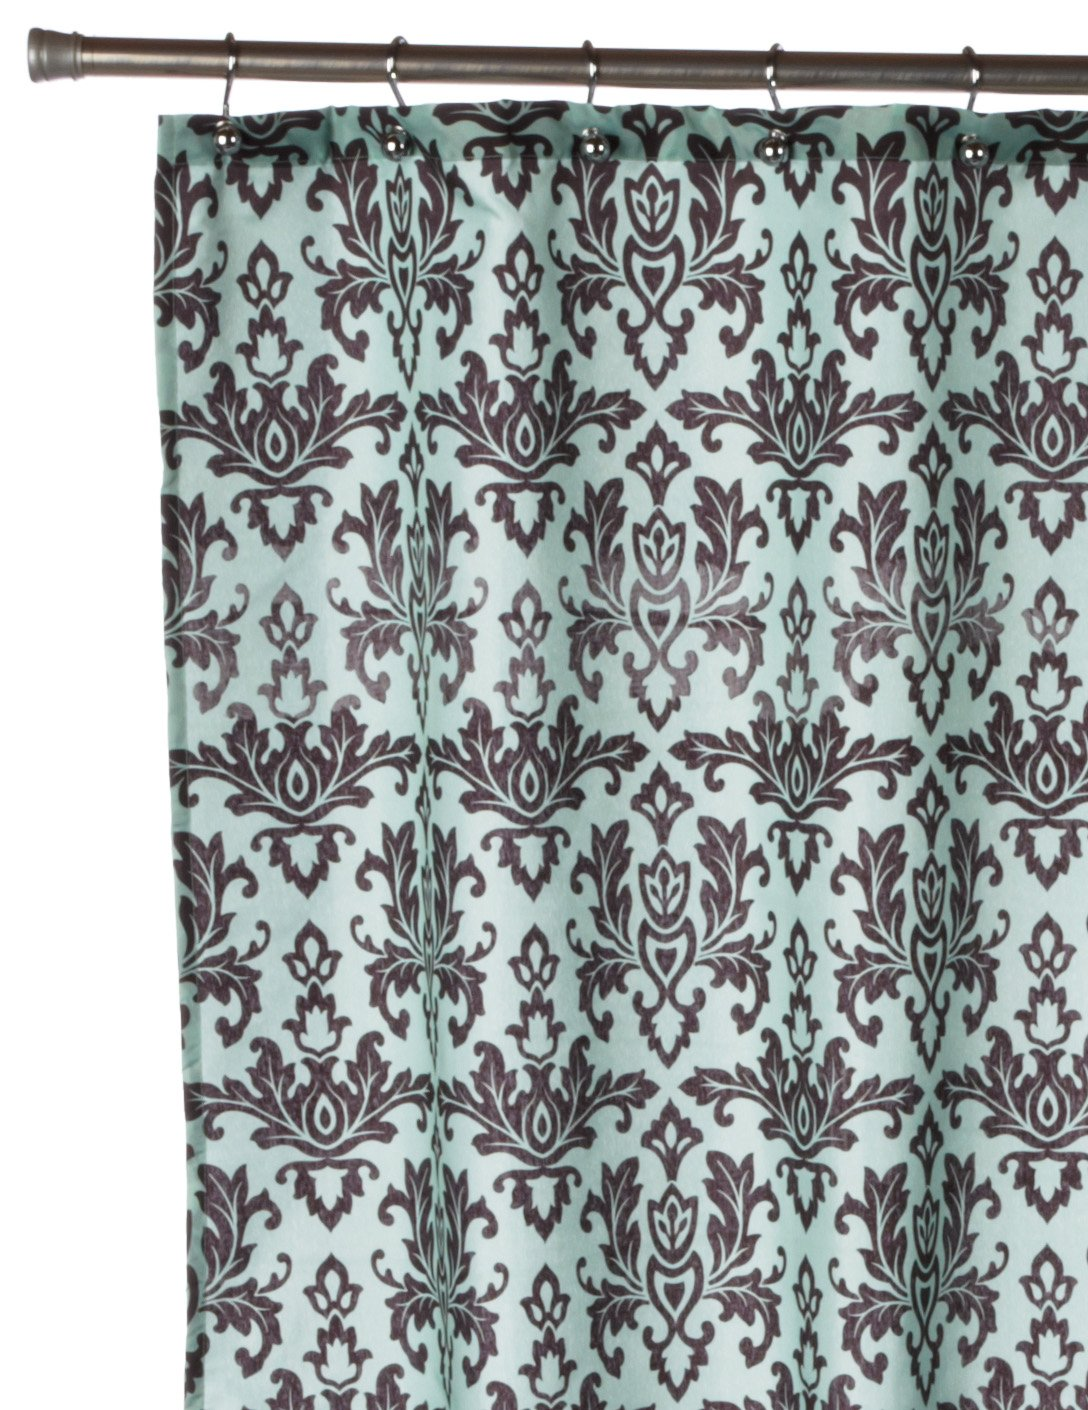 Amazon.com: Carnation Home Fashions Damask Fabric Shower Curtain ...